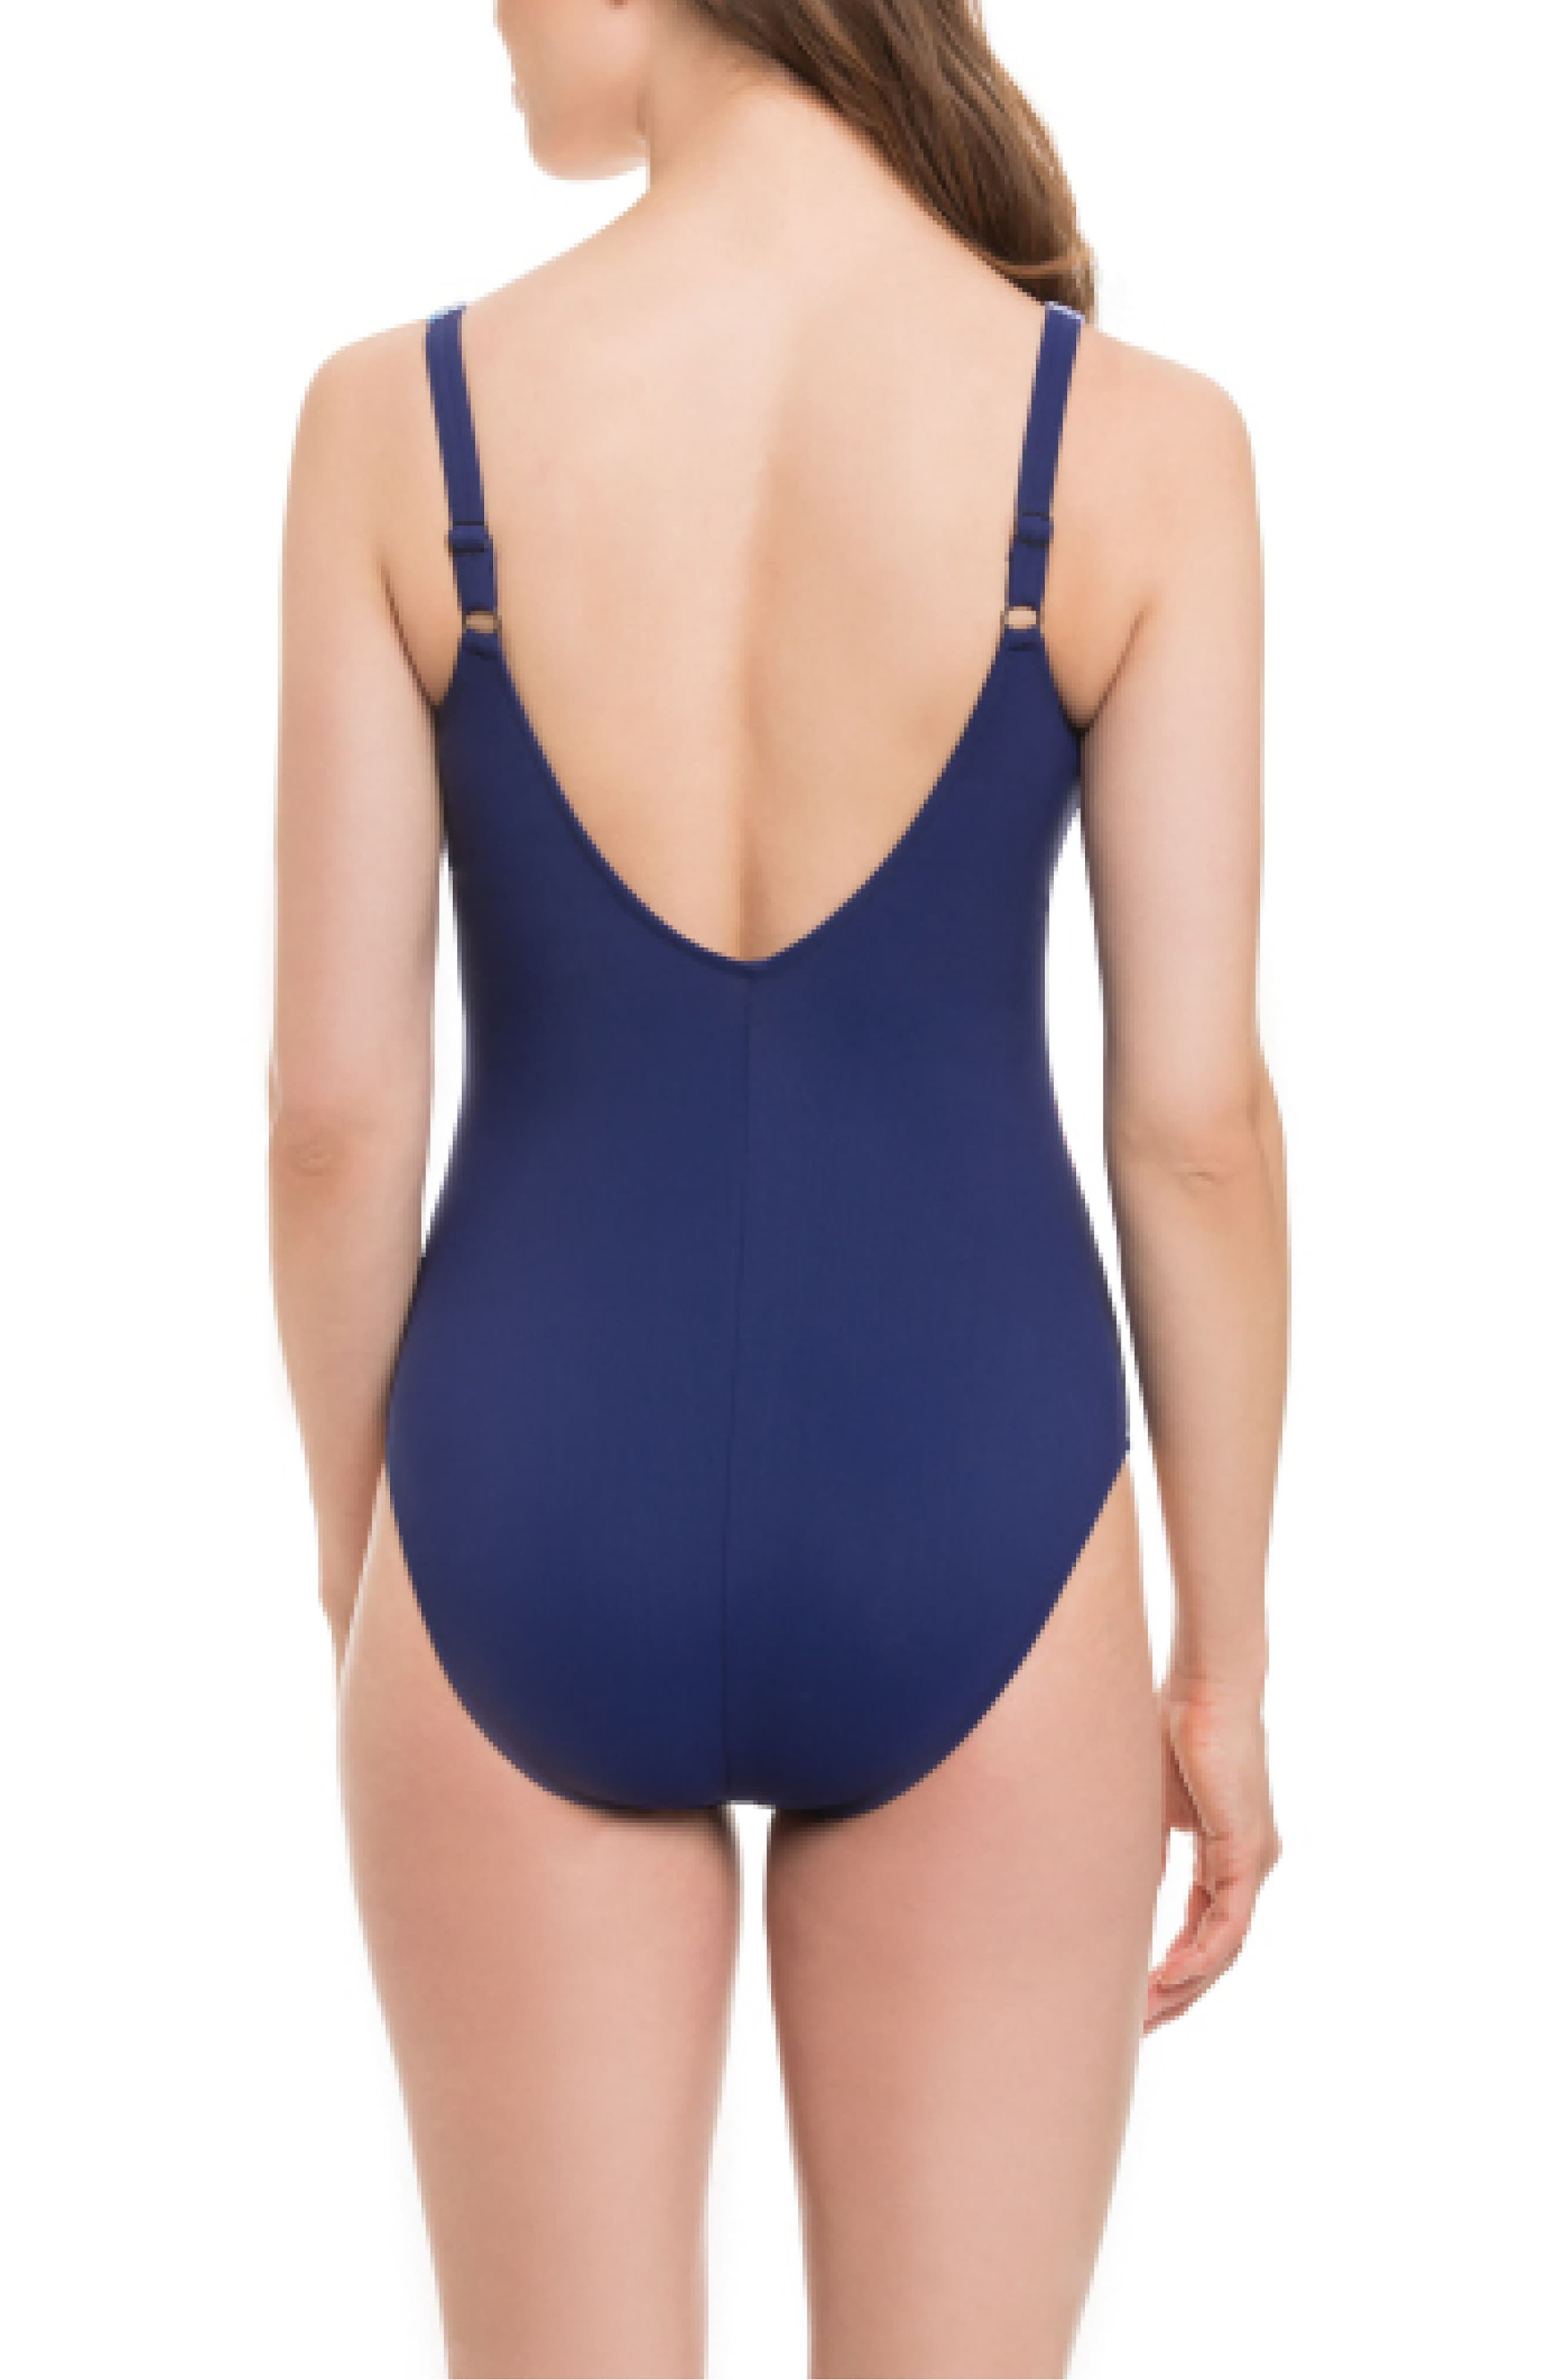 Tapestry One-Piece Swimsuit,                             Alternate thumbnail 2, color,